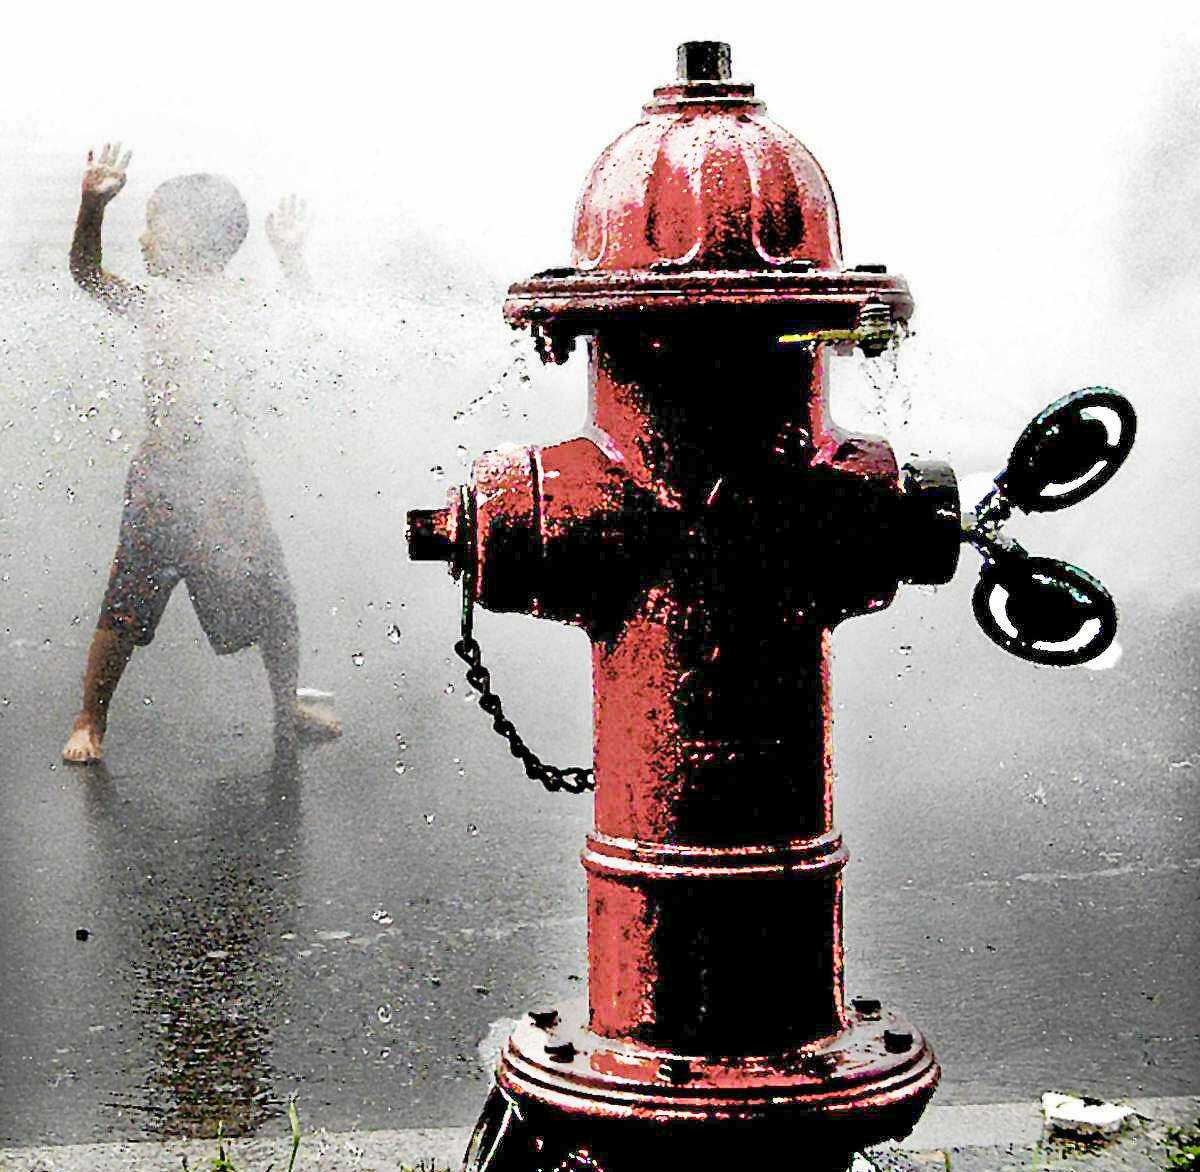 Middletown will be opening fire hydrants in areas where children congregate this week, such on Portland Street. These will allow families to have fun cooling off during the heat wave.